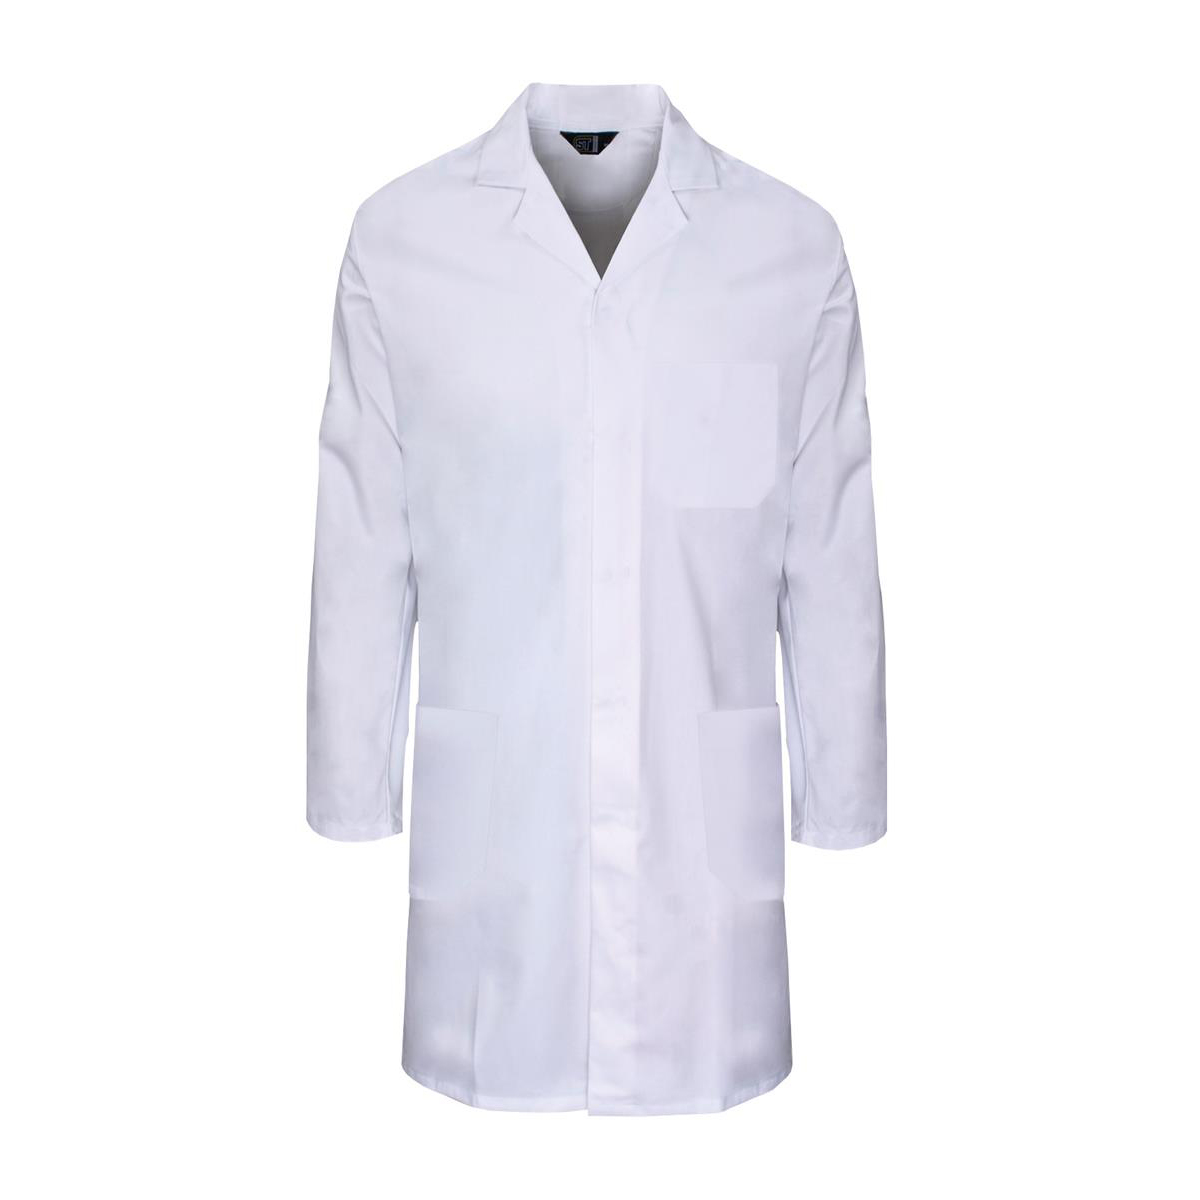 Supertouch Lab Coat Polycotton with 3 Pockets Medium White Ref 57002 *Approx 3 Day Leadtime*